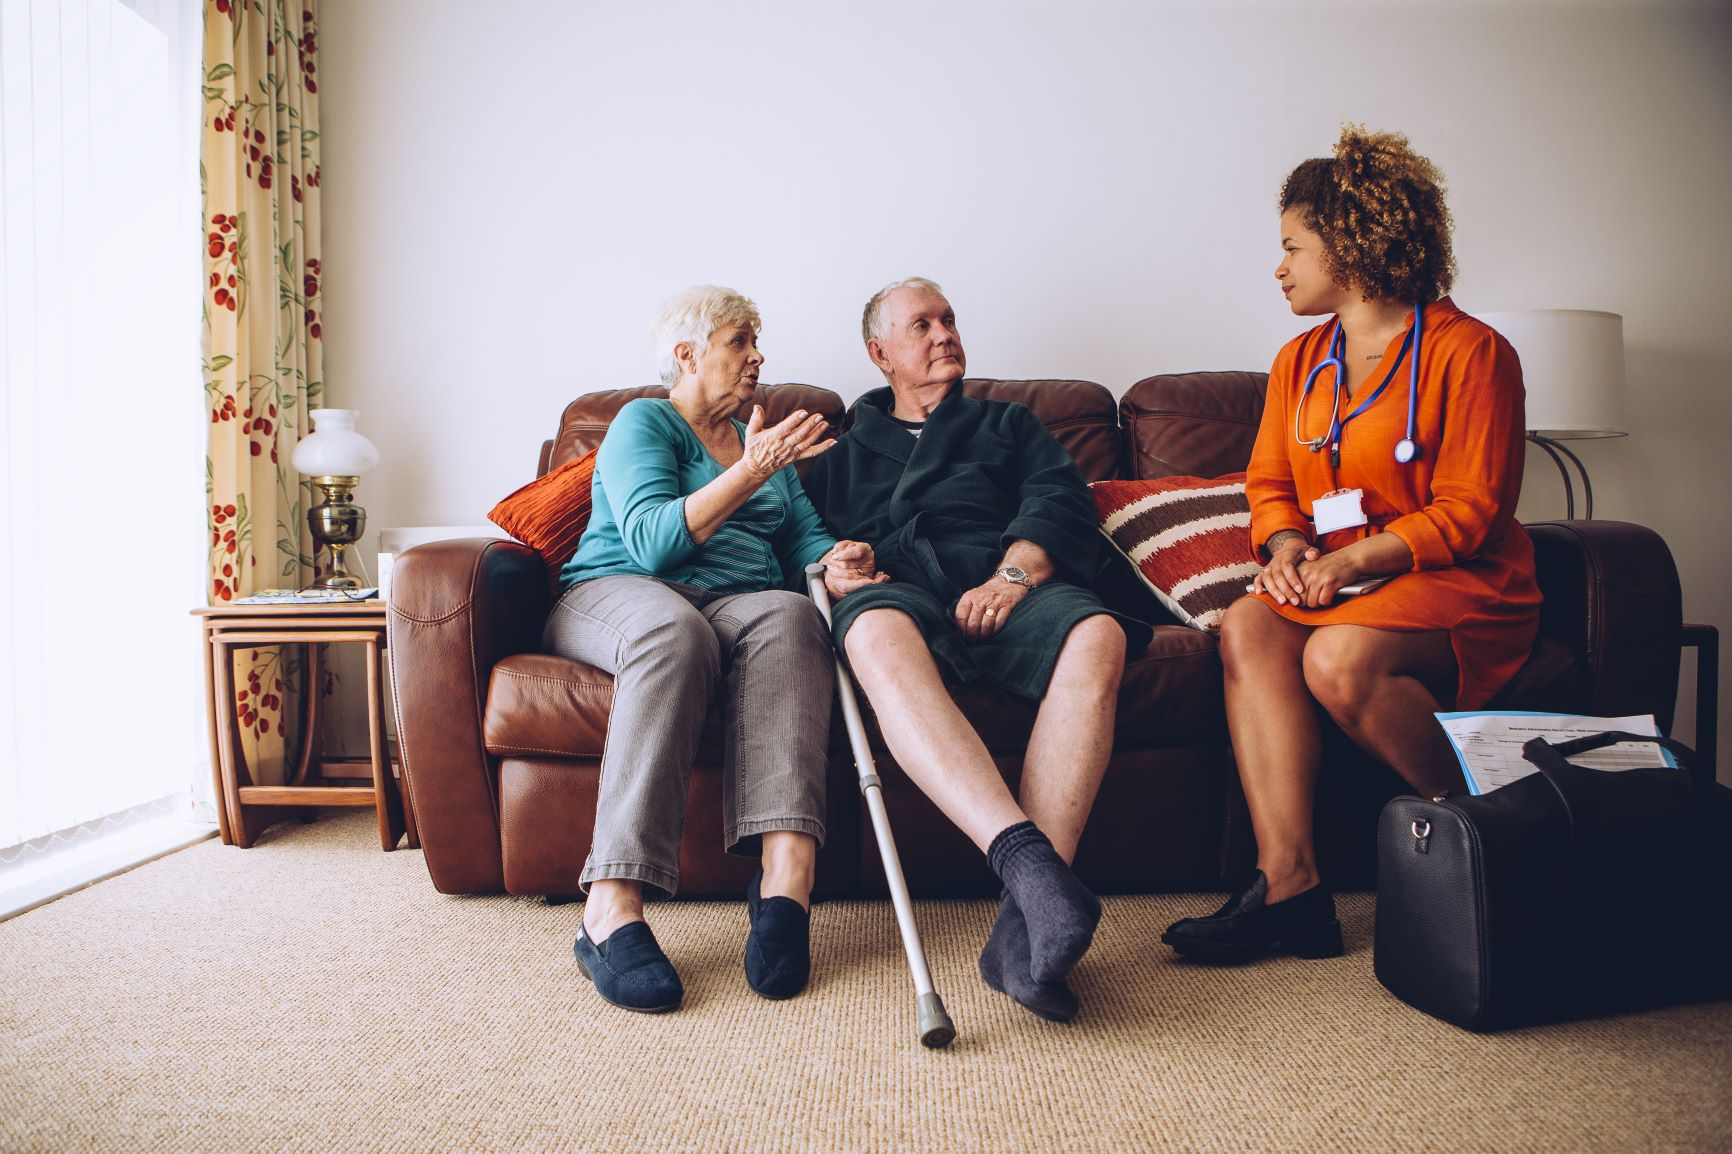 New Home Care toolkit to support people at end of life